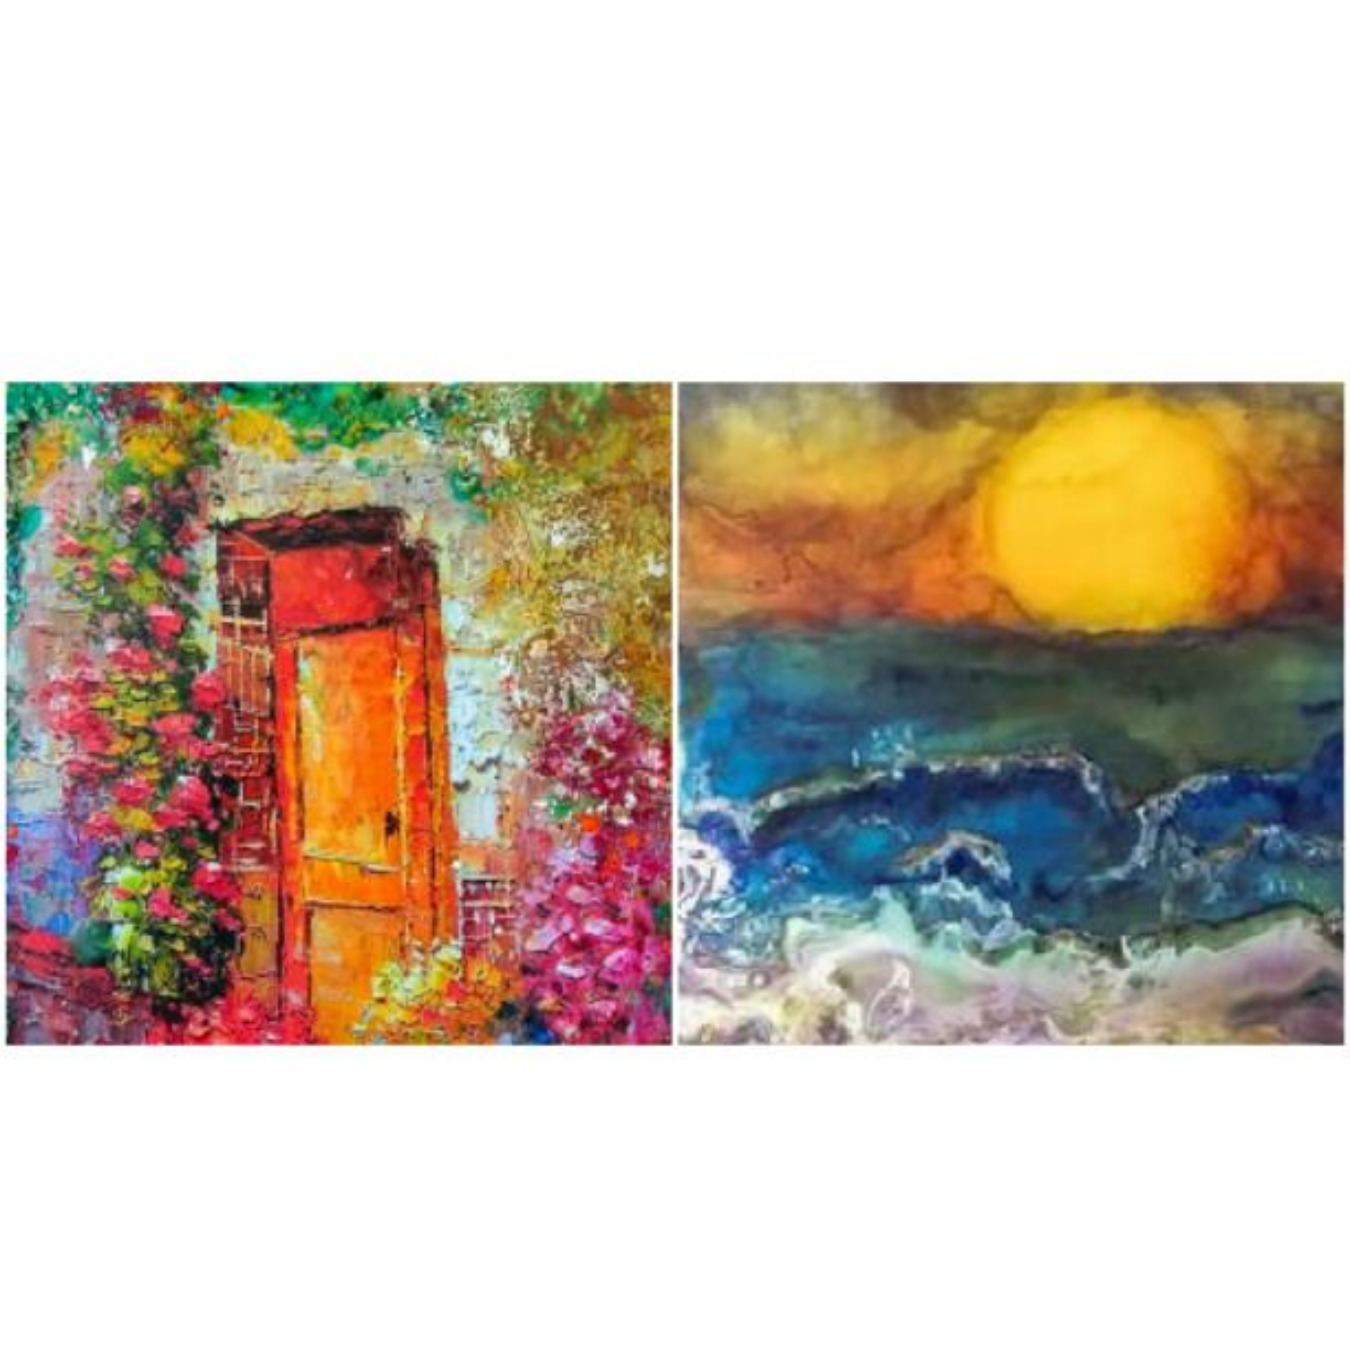 Encaustic Art Workshop For Beginners In Bangalore Tickets By Bloom Grow 14 Sep 2019 Bengaluru Event